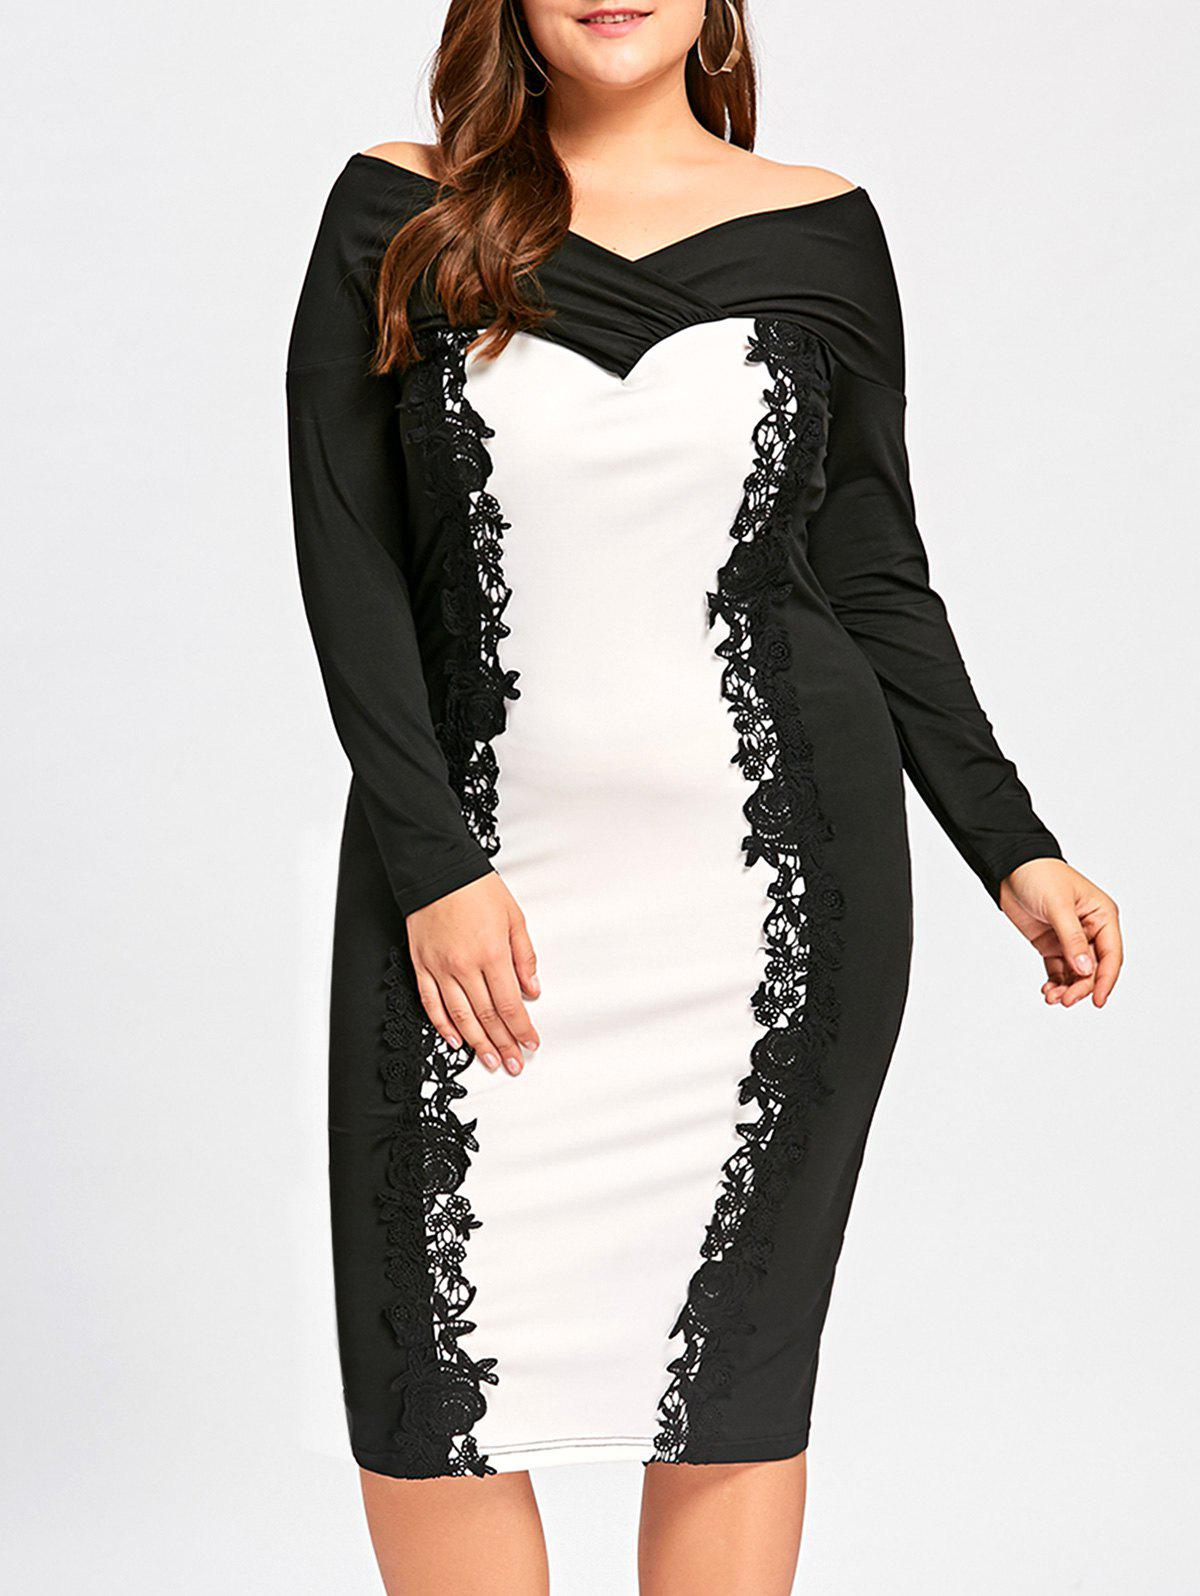 Formal Plus Size Knee Length Off Shoulder DressWOMEN<br><br>Size: 5XL; Color: WHITE AND BLACK; Style: Brief; Material: Polyester,Spandex; Silhouette: Sheath; Dresses Length: Knee-Length; Neckline: Off The Shoulder; Sleeve Length: Long Sleeves; Pattern Type: Others; With Belt: No; Season: Fall,Spring; Weight: 0.4160kg; Package Contents: 1 x Dress;